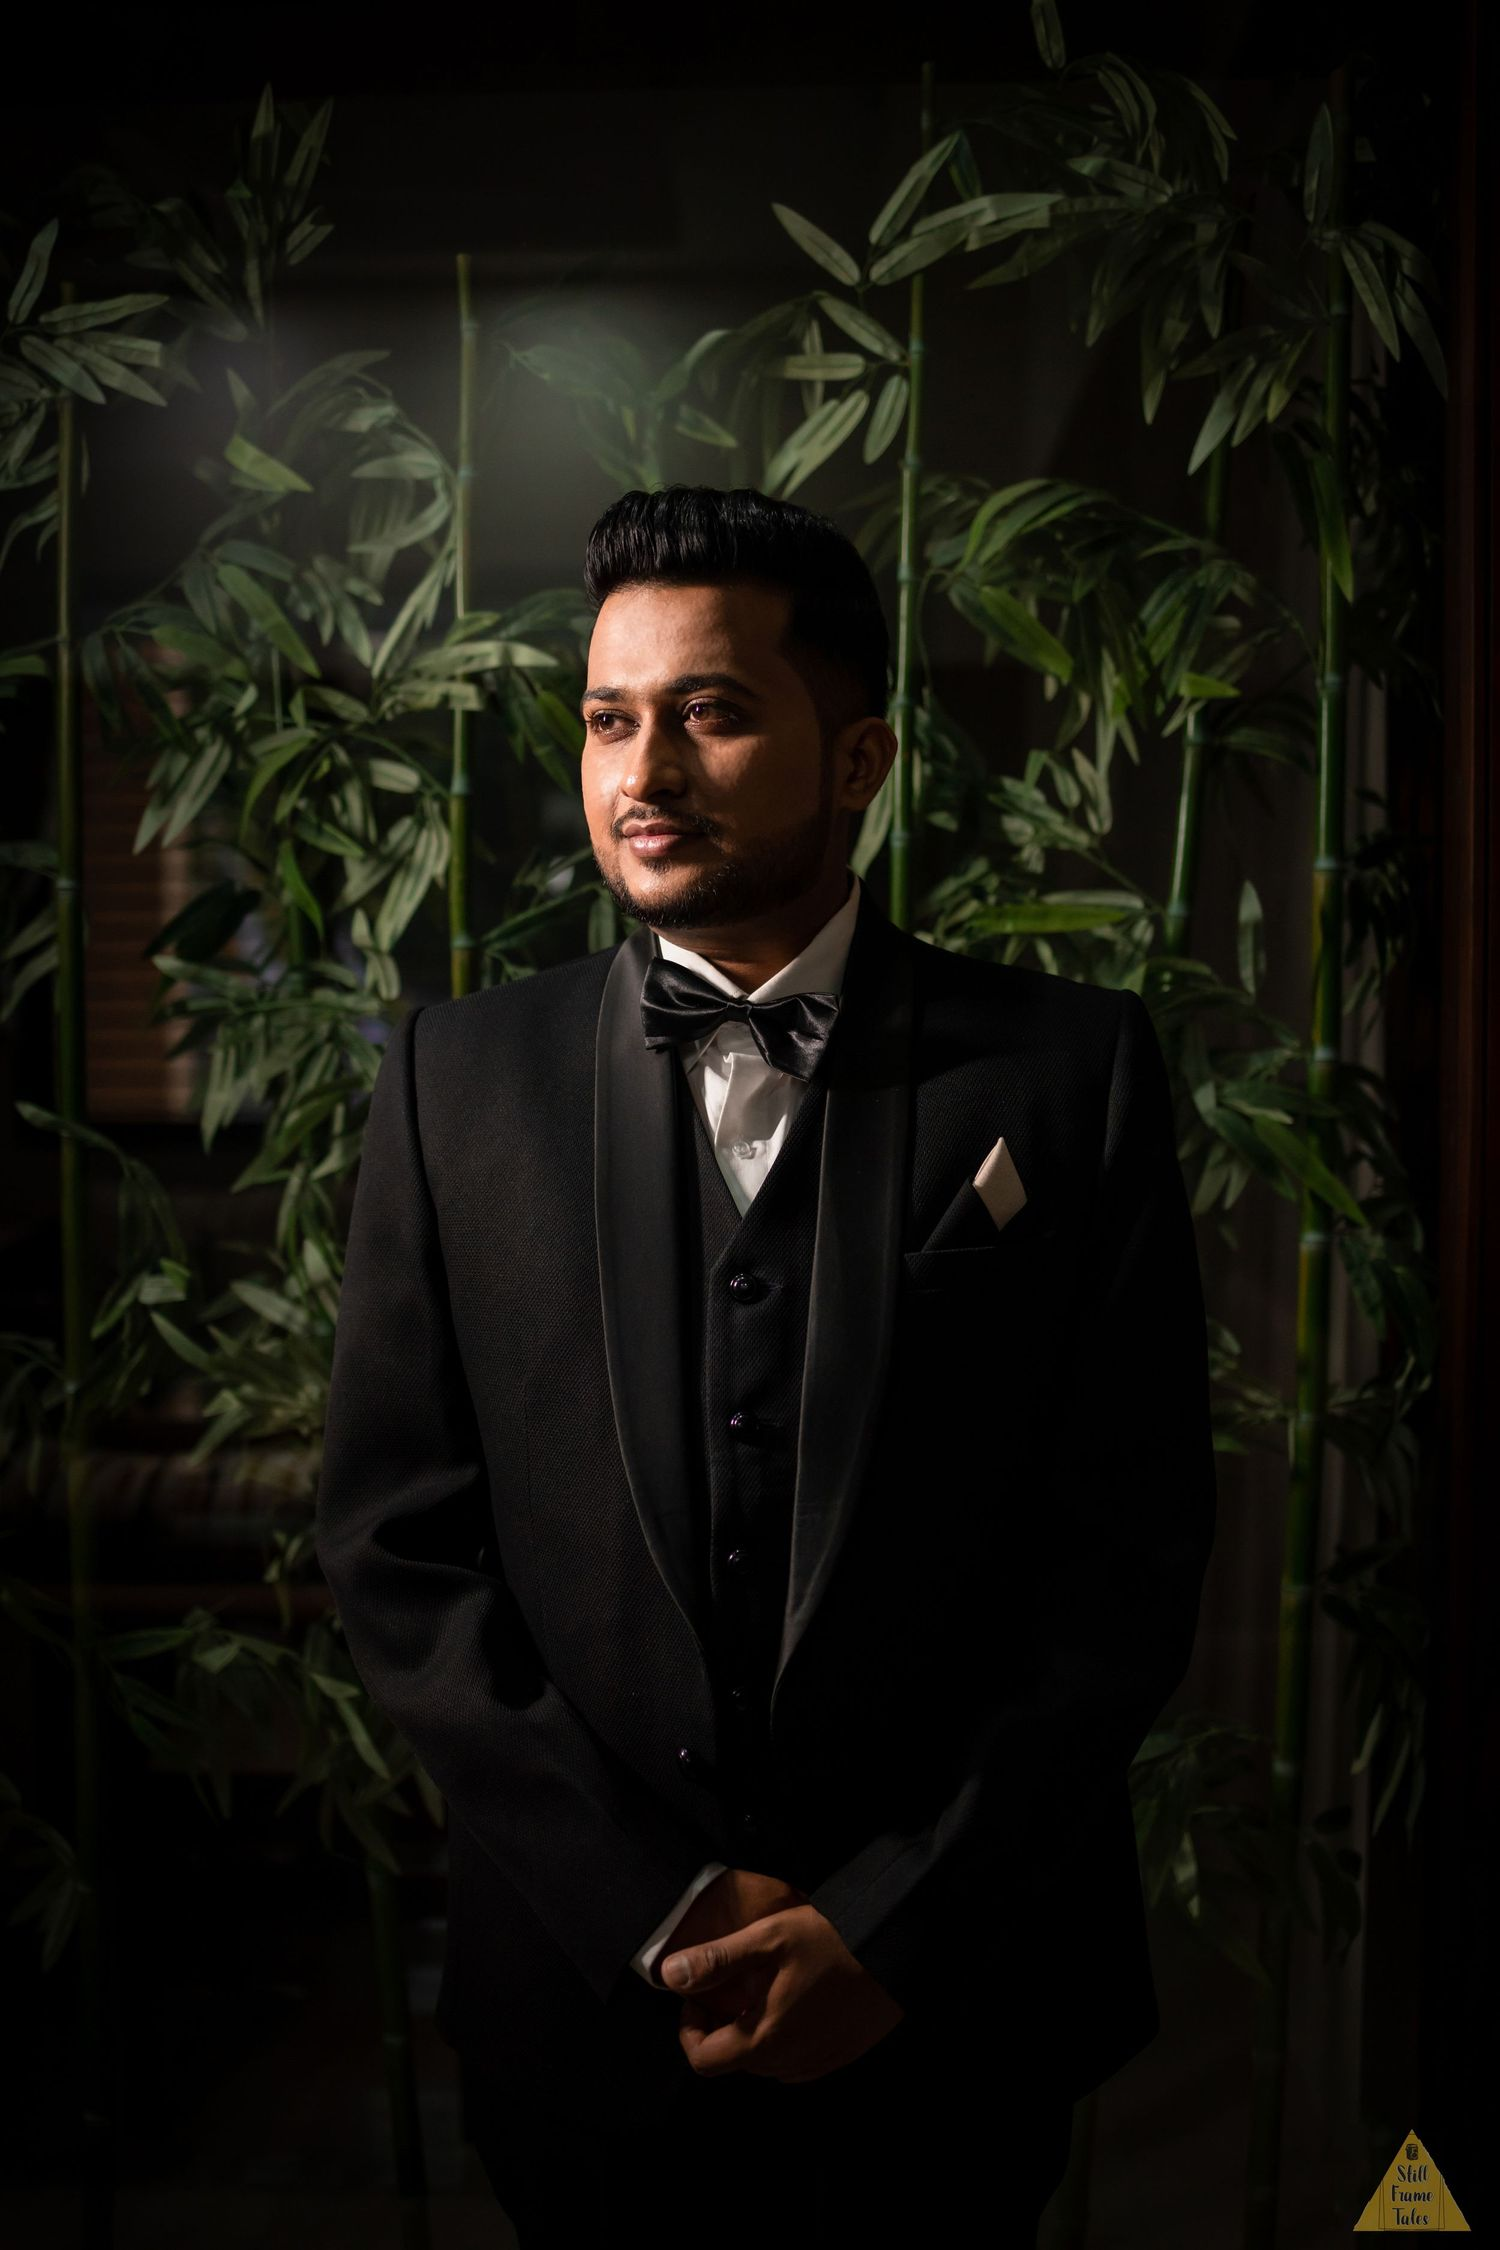 Groom posing for a solo portrait with green tree background